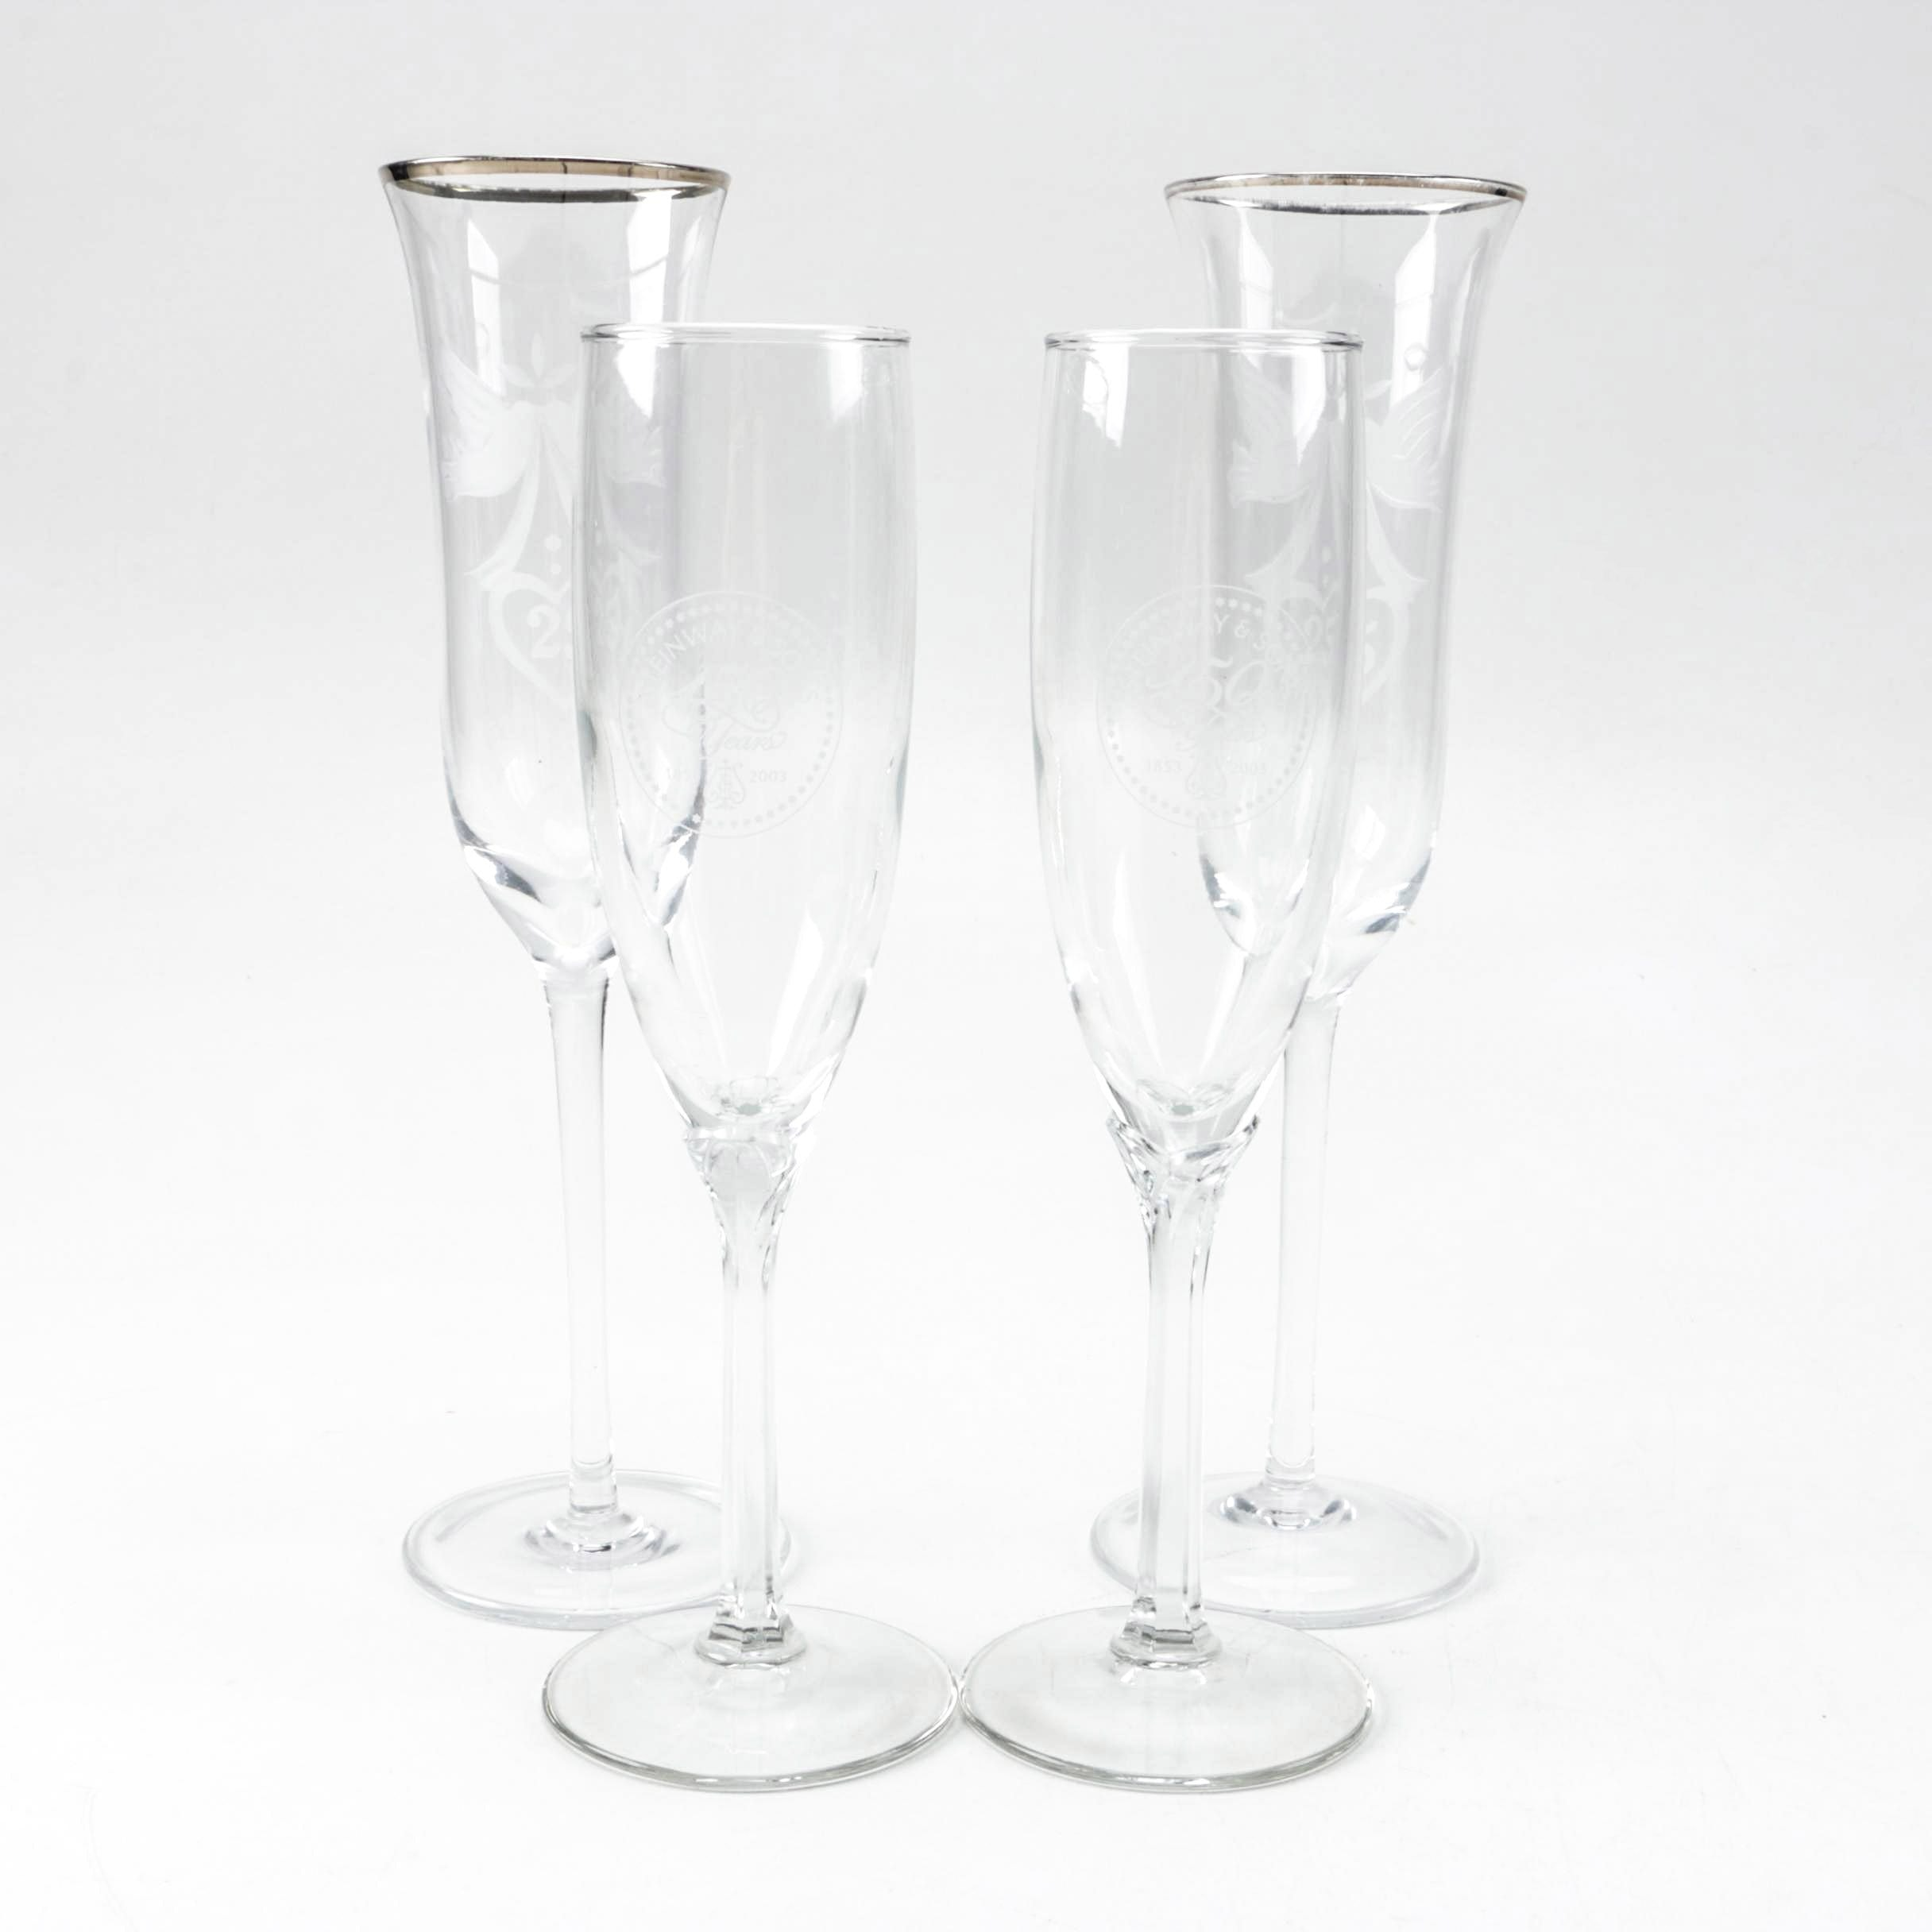 Steinway & Sons Commemorative Champagne Flutes